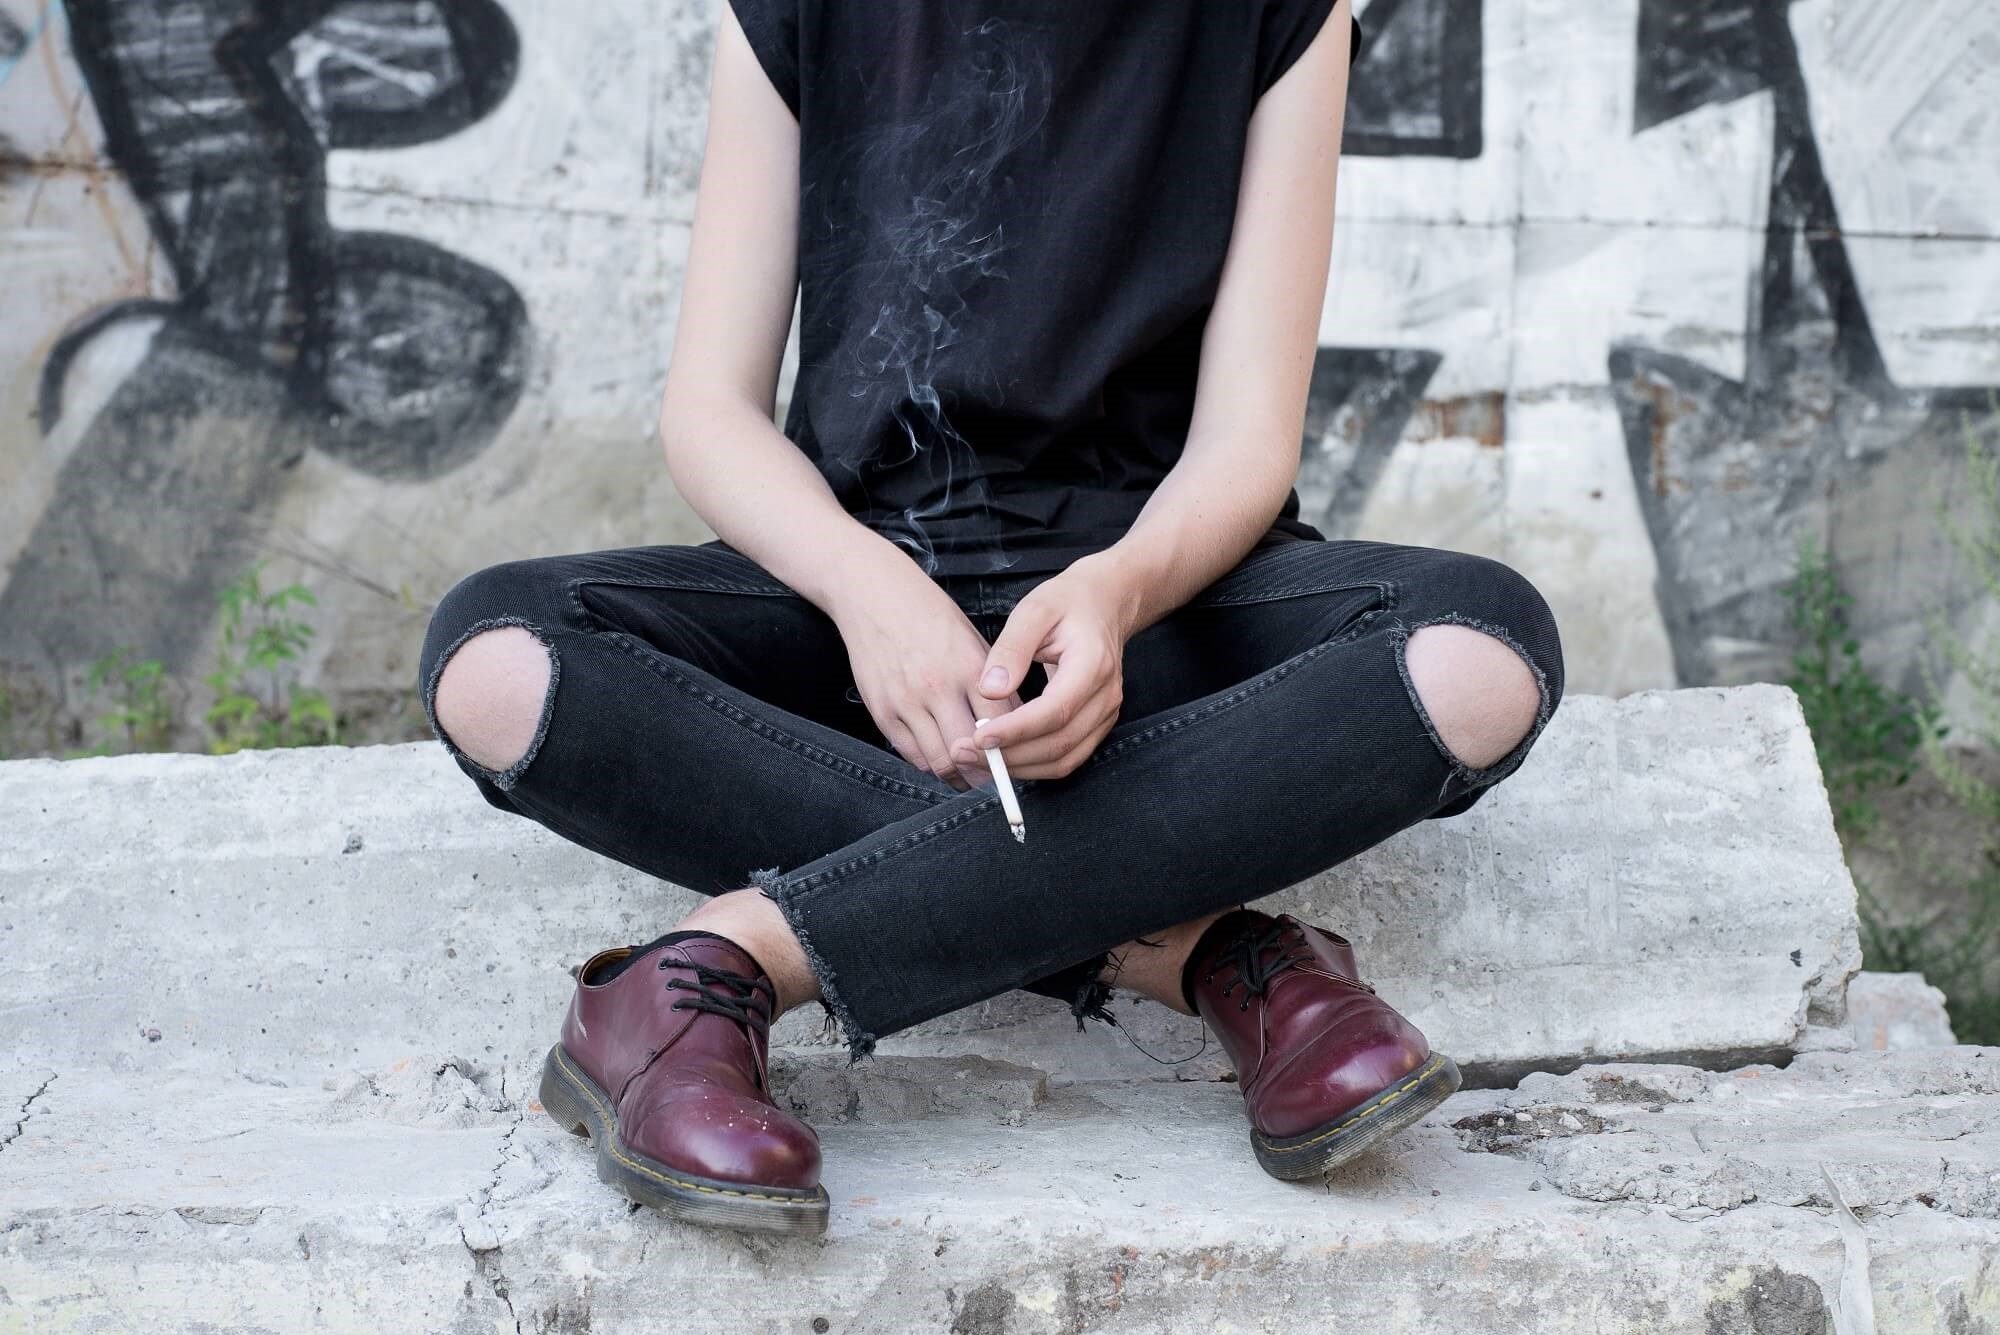 A novel prognostic tool can be used to accurately identify adolescents at risk for initiating cigarette smoking.